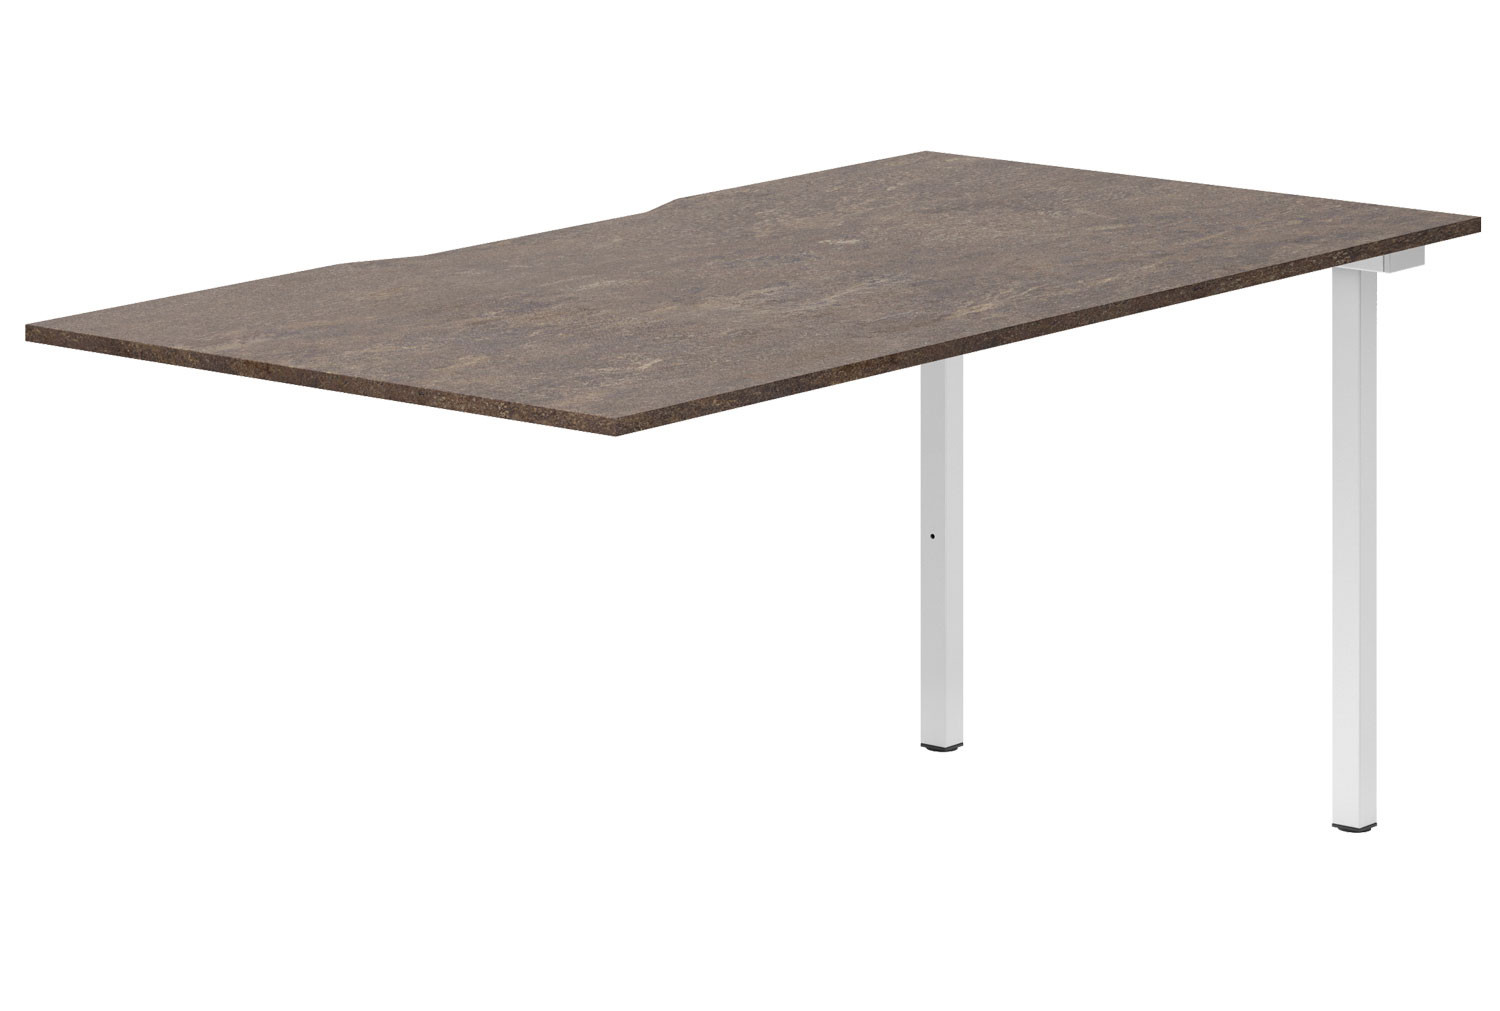 Lasso Single Add-On Bench Desk (Pitted Steel)